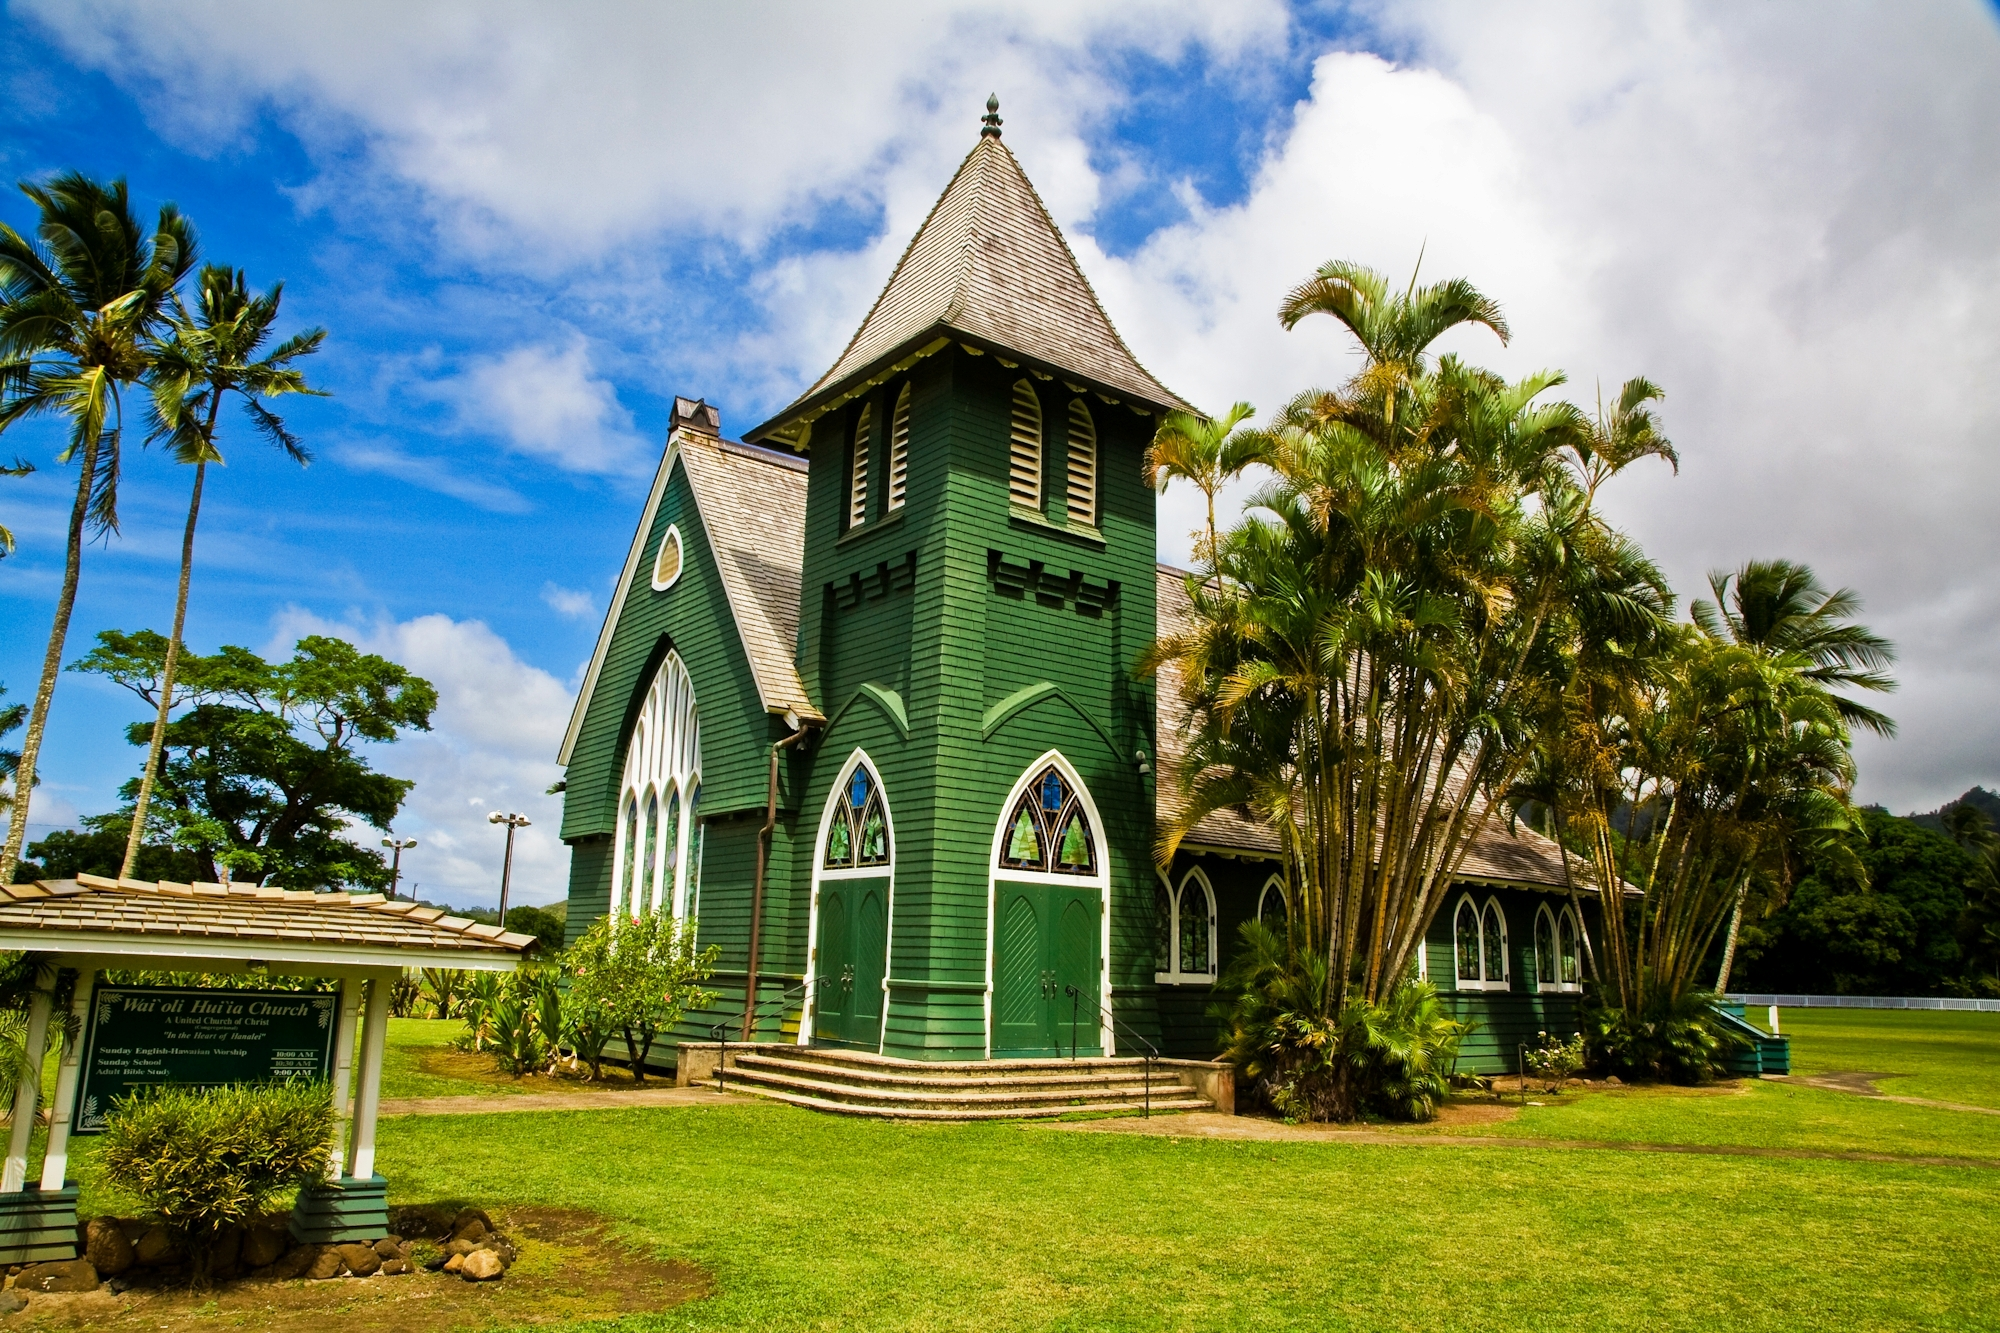 Waoli Huiia (aka Waioli Mission Church) the oldest church on the island of Kauai